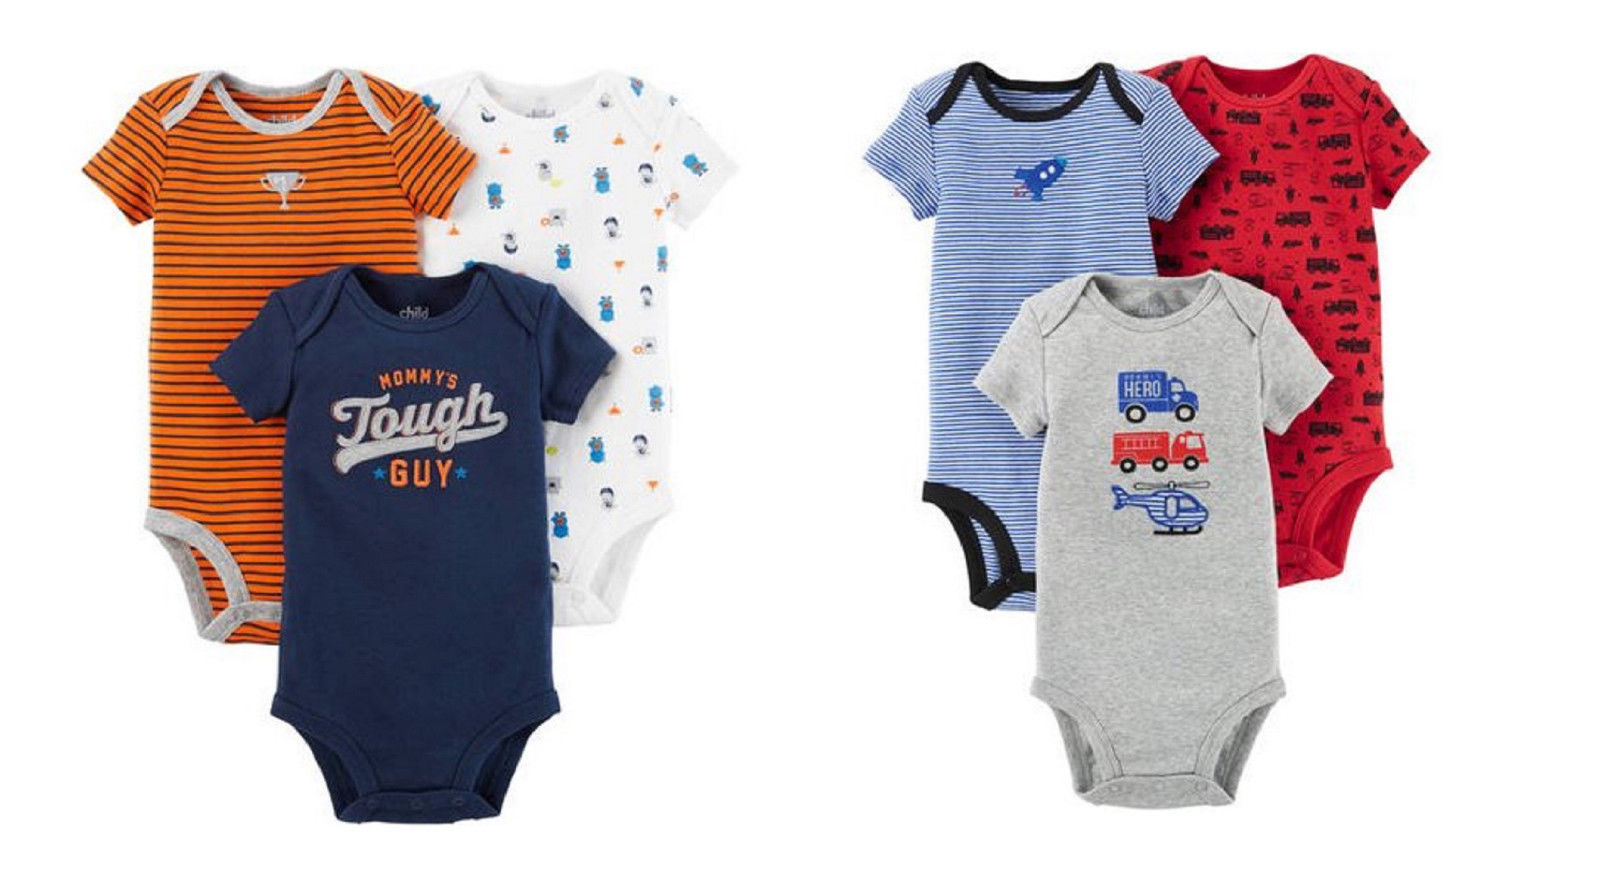 af583315f CHILD OF MINE Boys' 3-Piece Infant Baby and 16 similar items